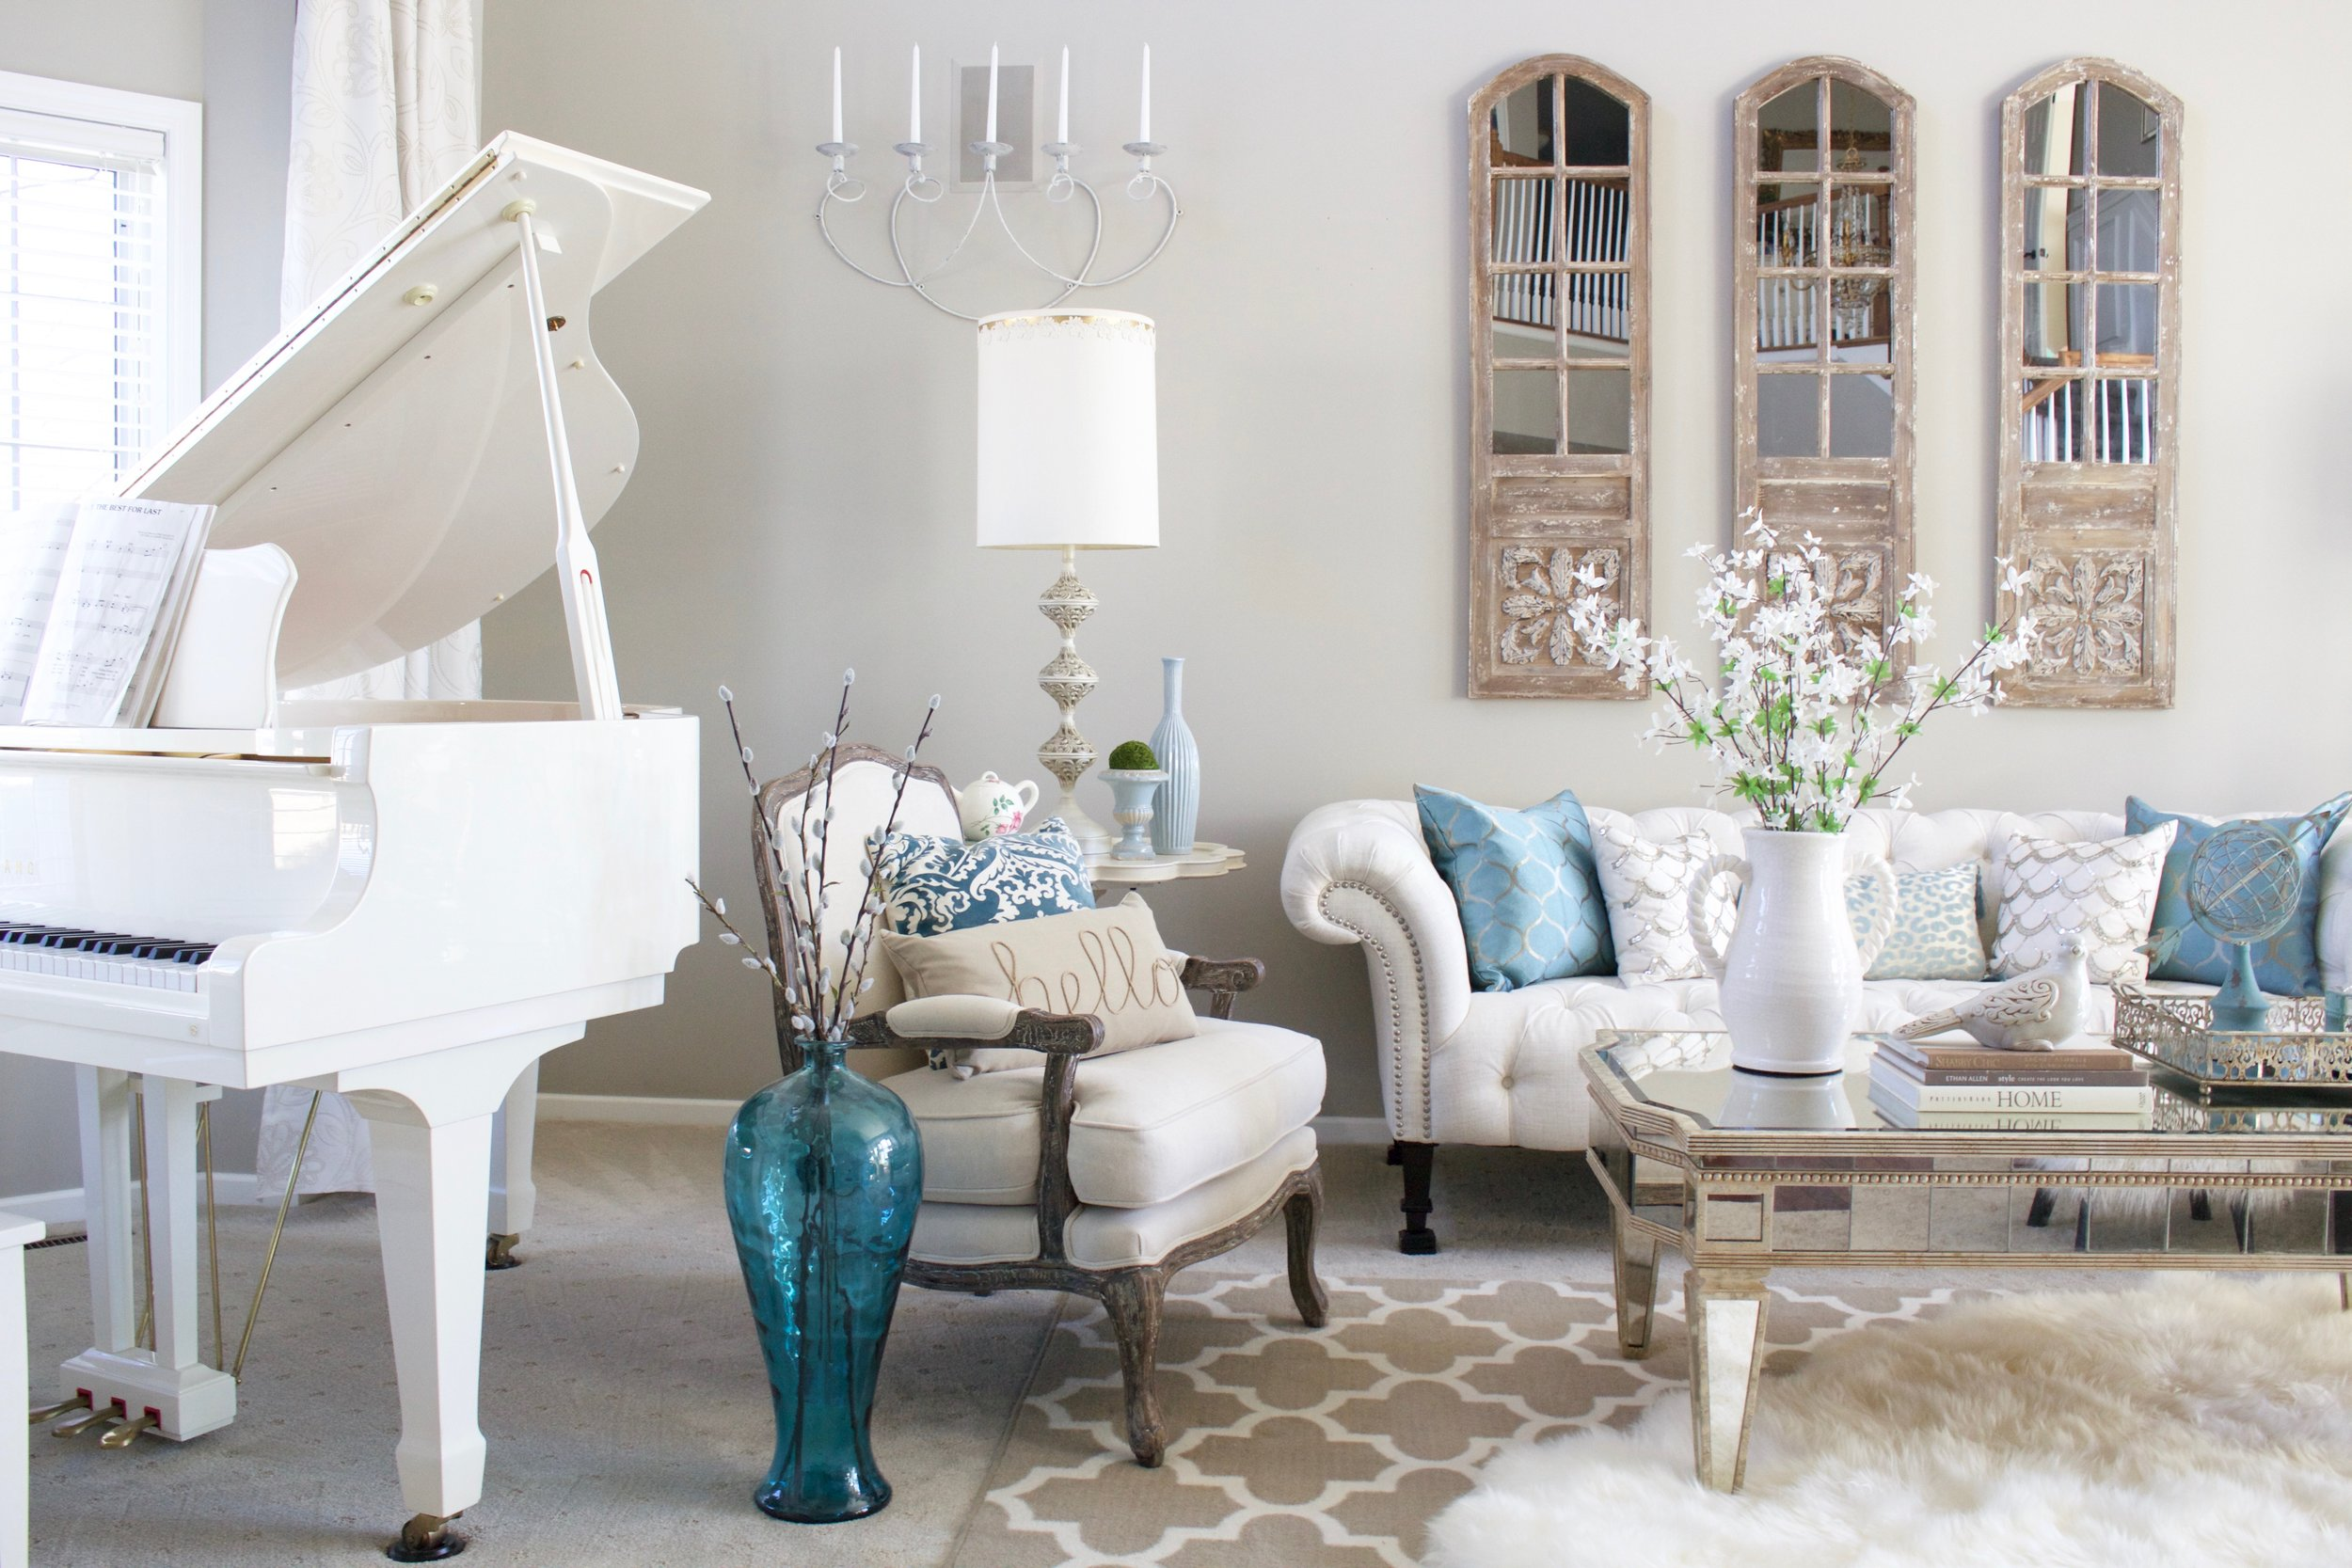 Style Your Home For Spring - Styled With Lace